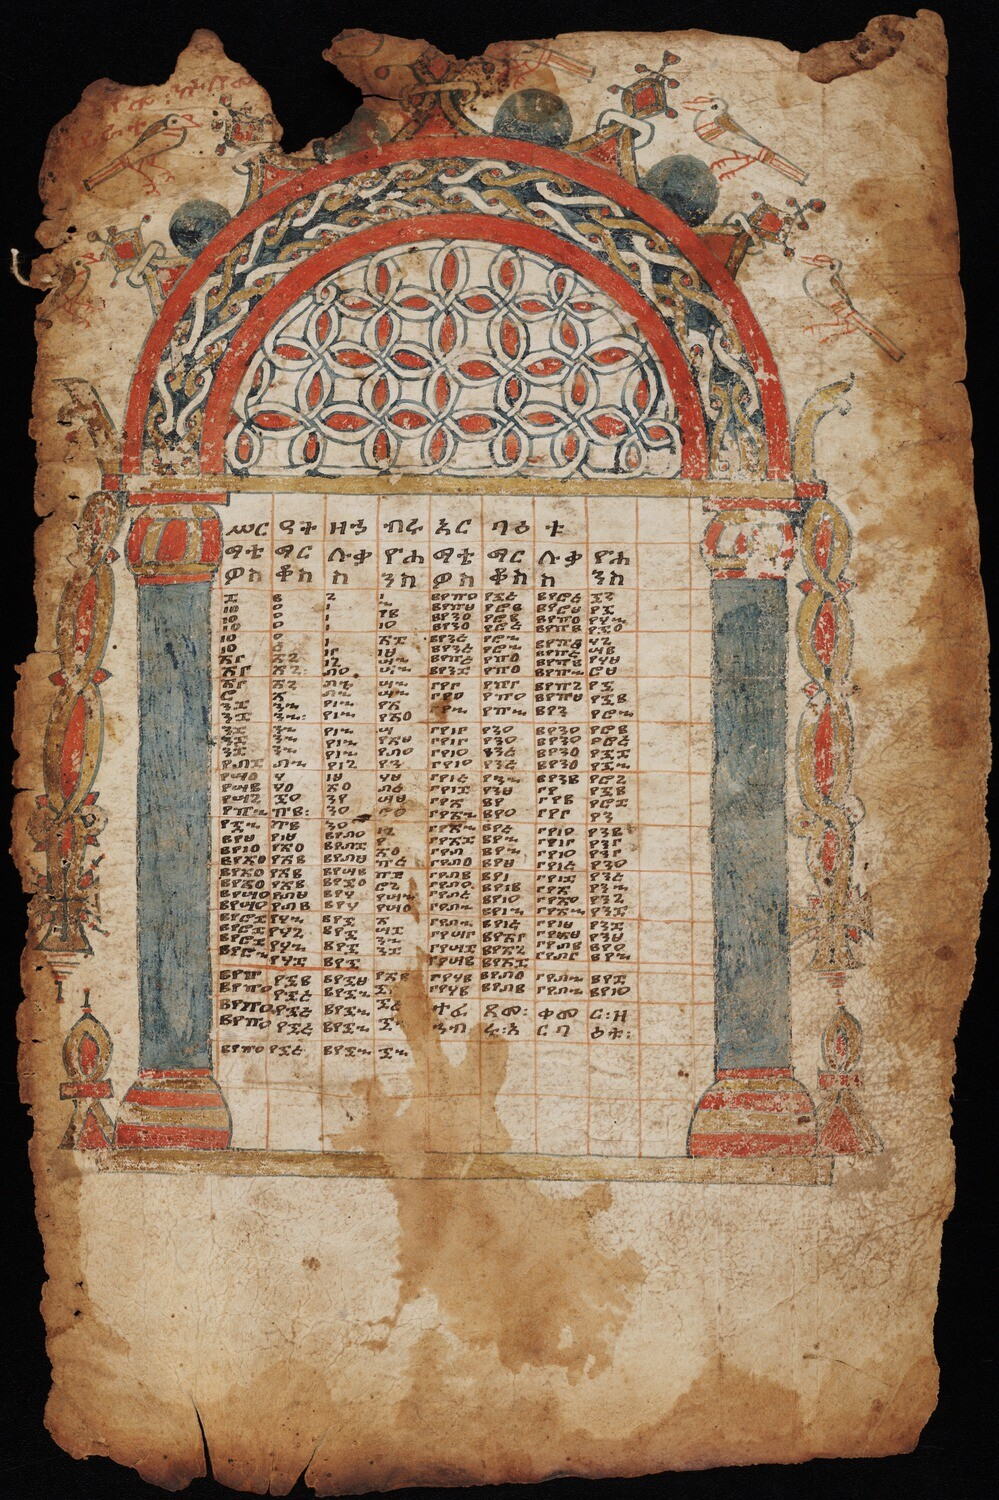 Single folio with large arch at top and several columns descending from the arch. This is a canon table.